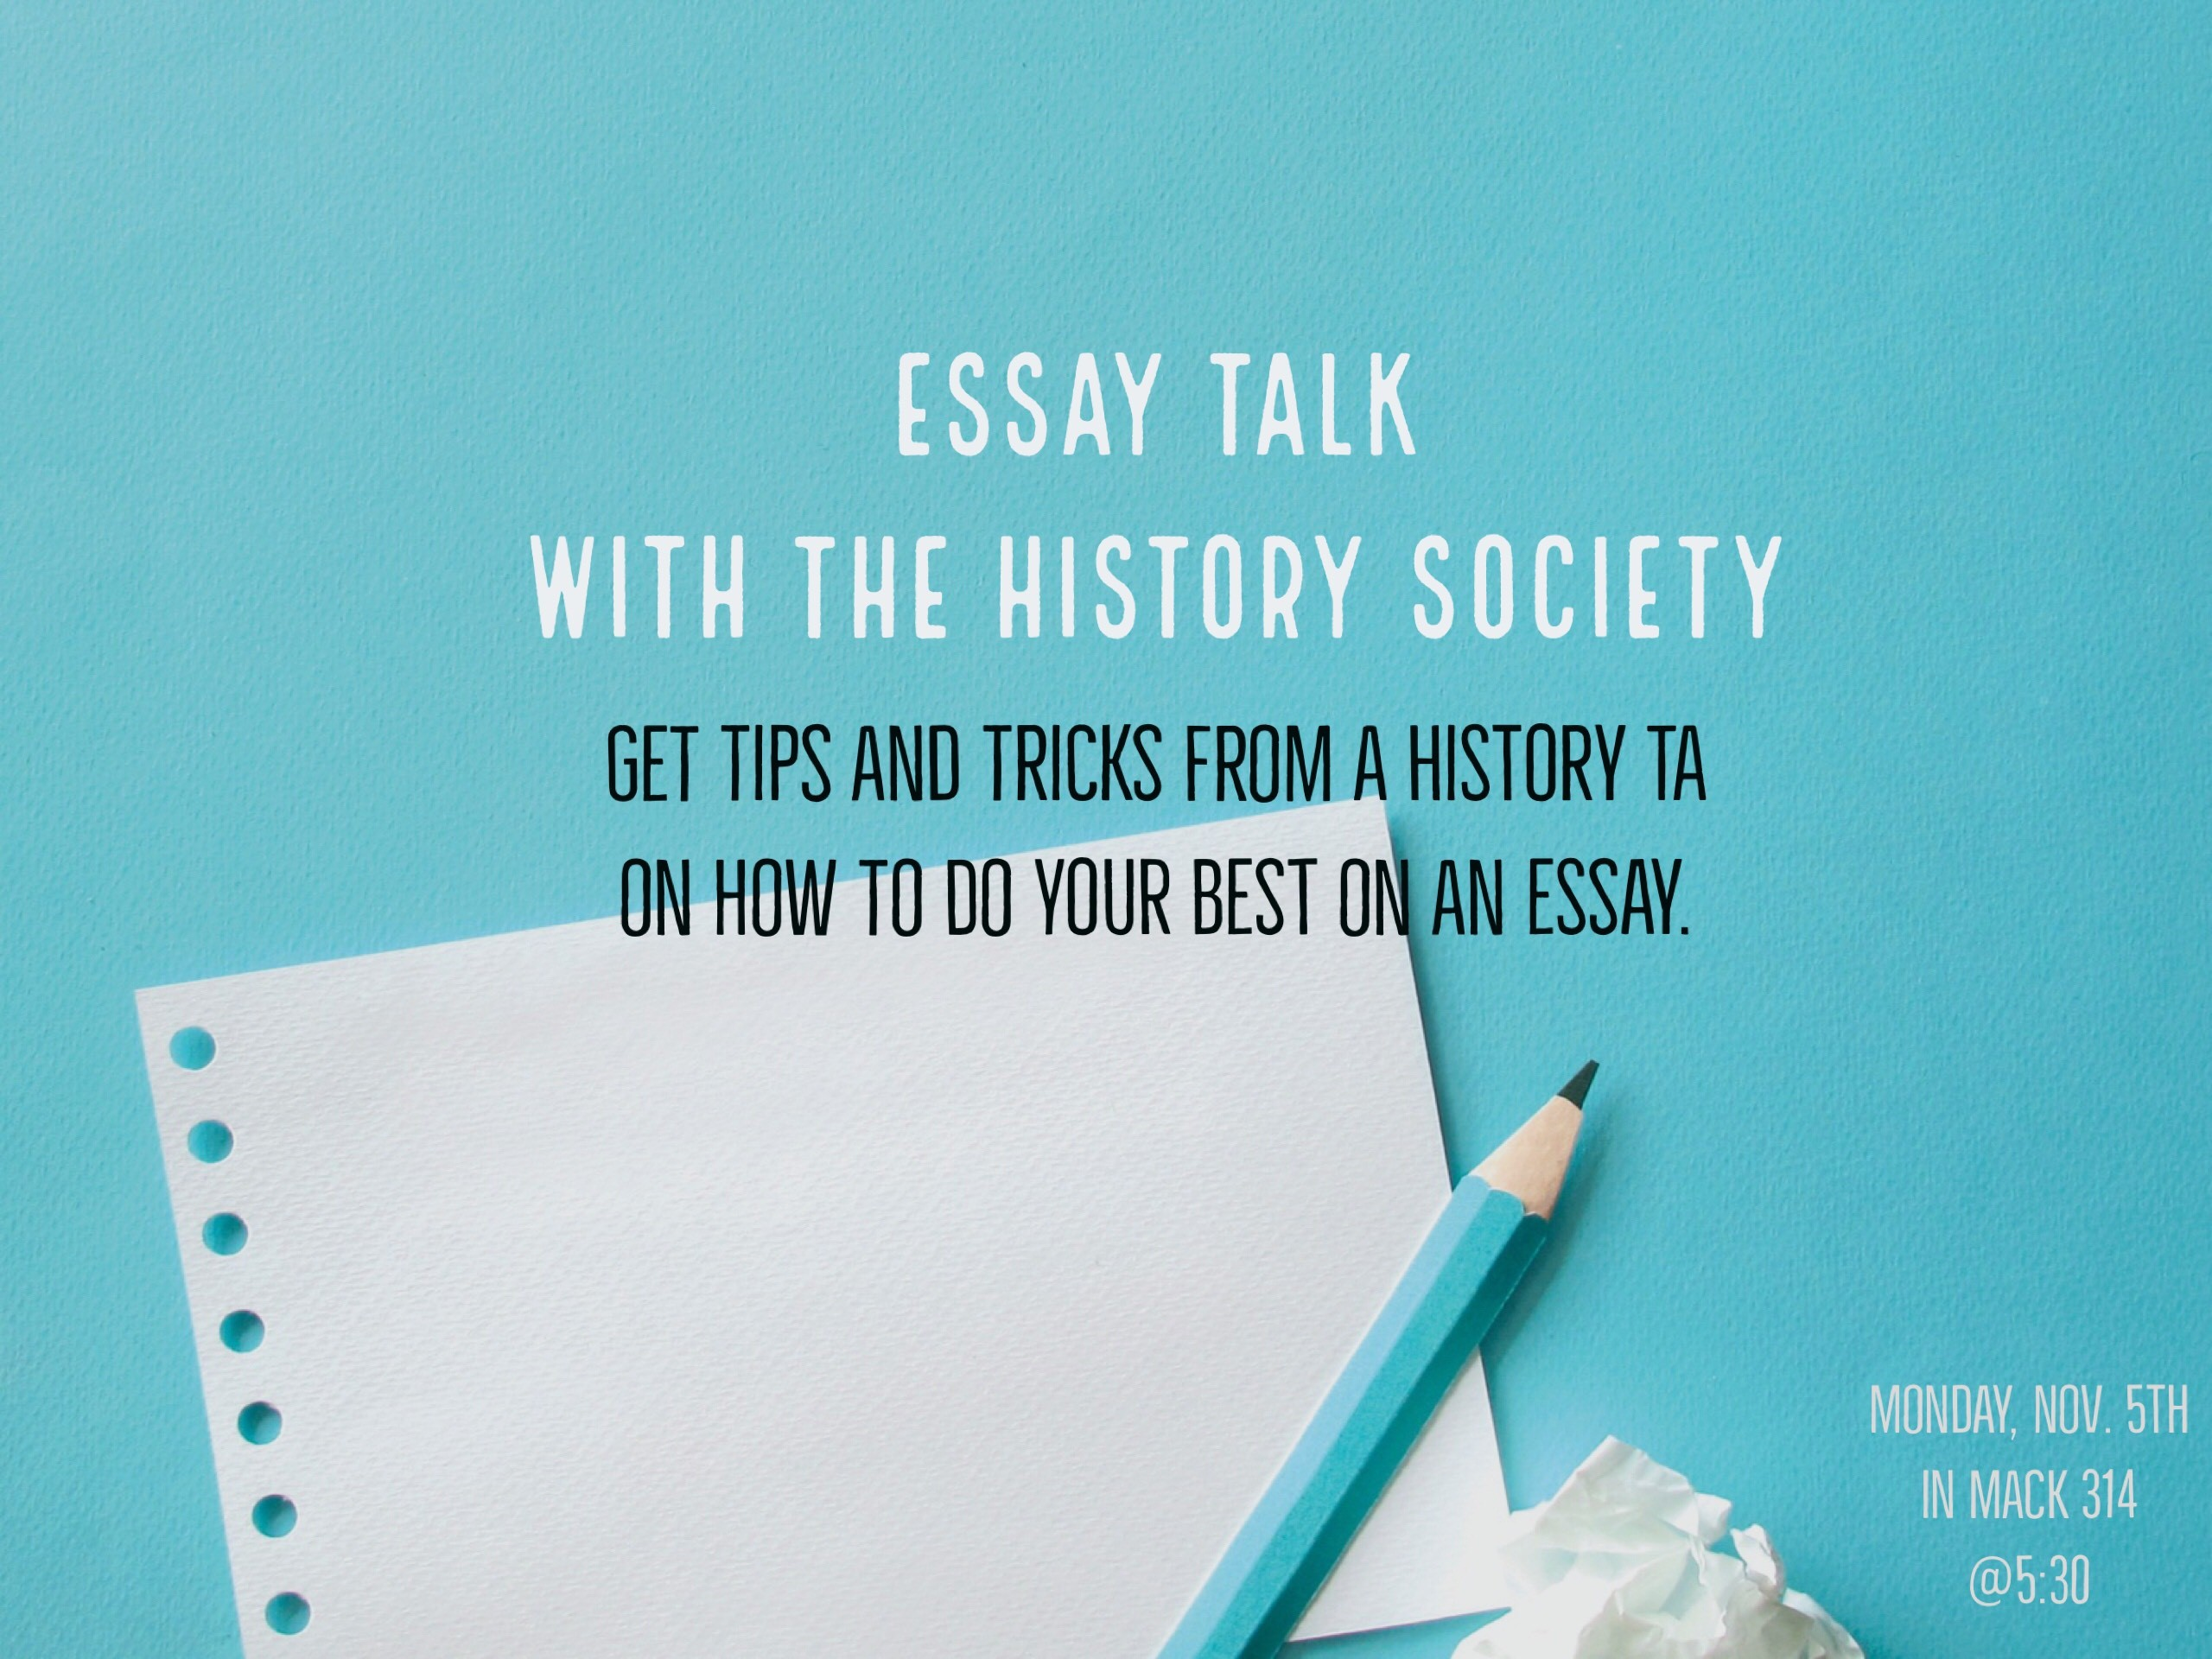 A Thesis For An Essay Should Hist Society Essay Talk Poster Fjpg  Research Paper Vs Essay also What Is An Essay Thesis Essay Talk With The History Society Tips And Tricks On How To Do  Healthy Eating Essay